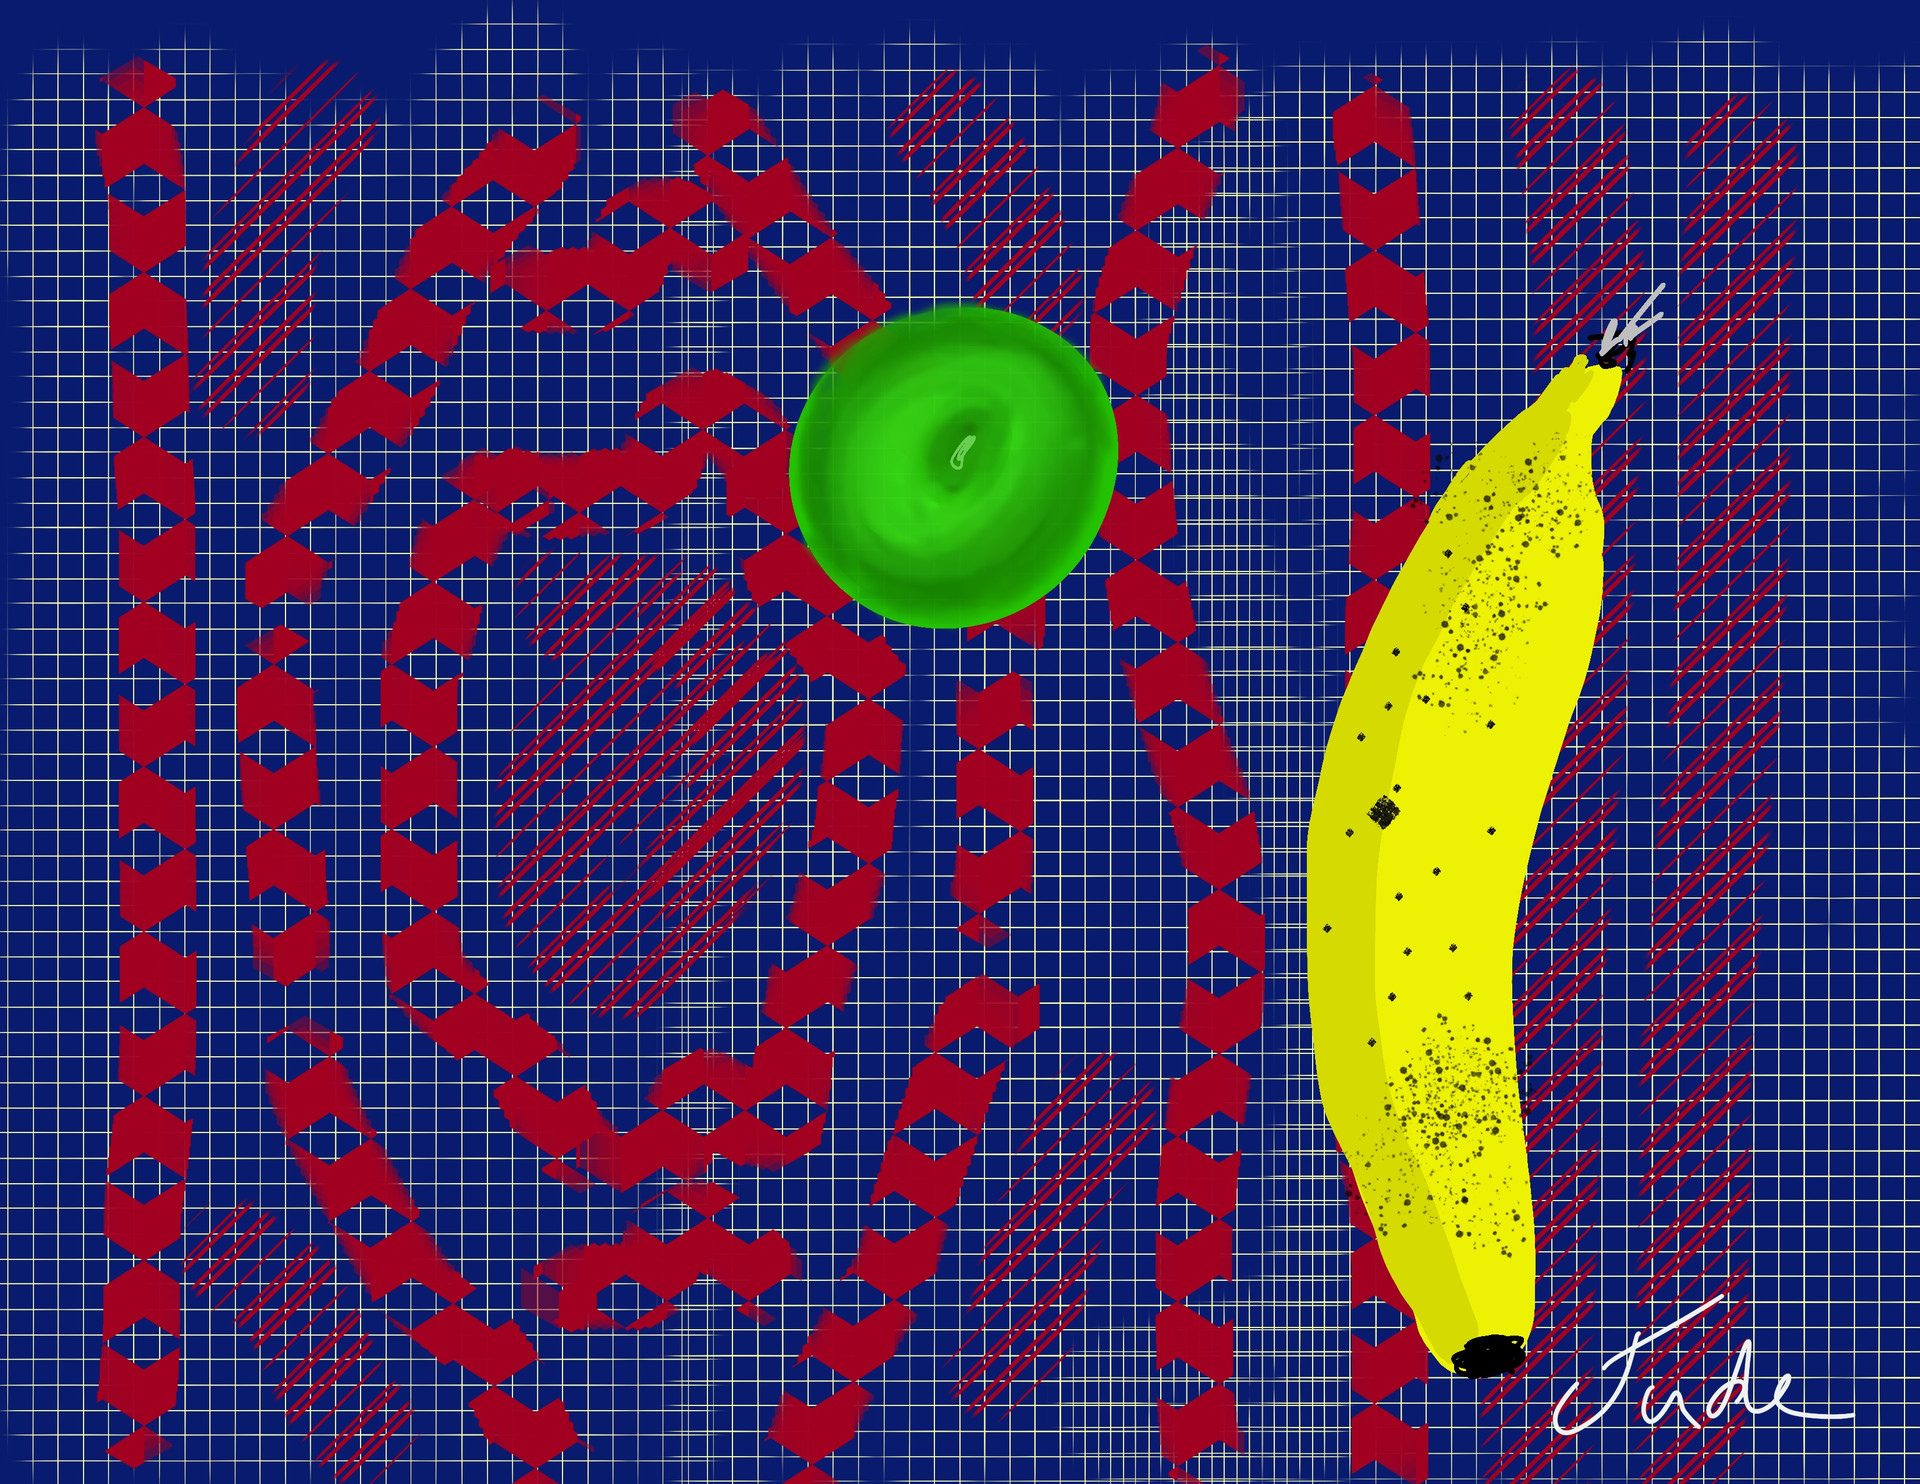 Fruit on a Persian Rug - Stylus on iPad Procreate